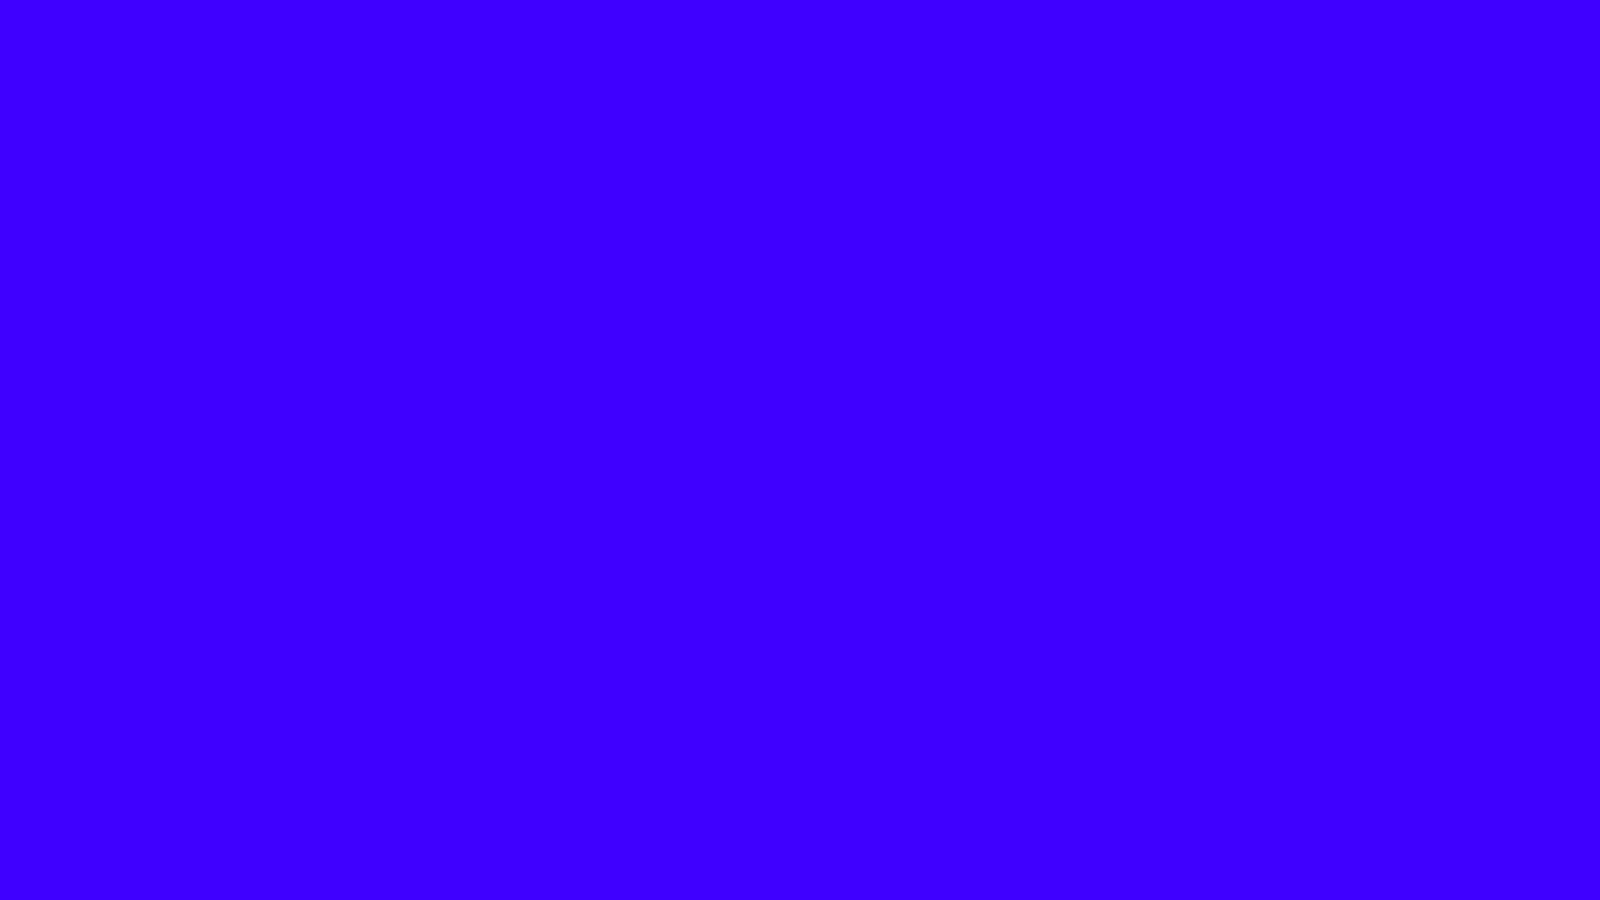 1600x900 Electric Ultramarine Solid Color Background